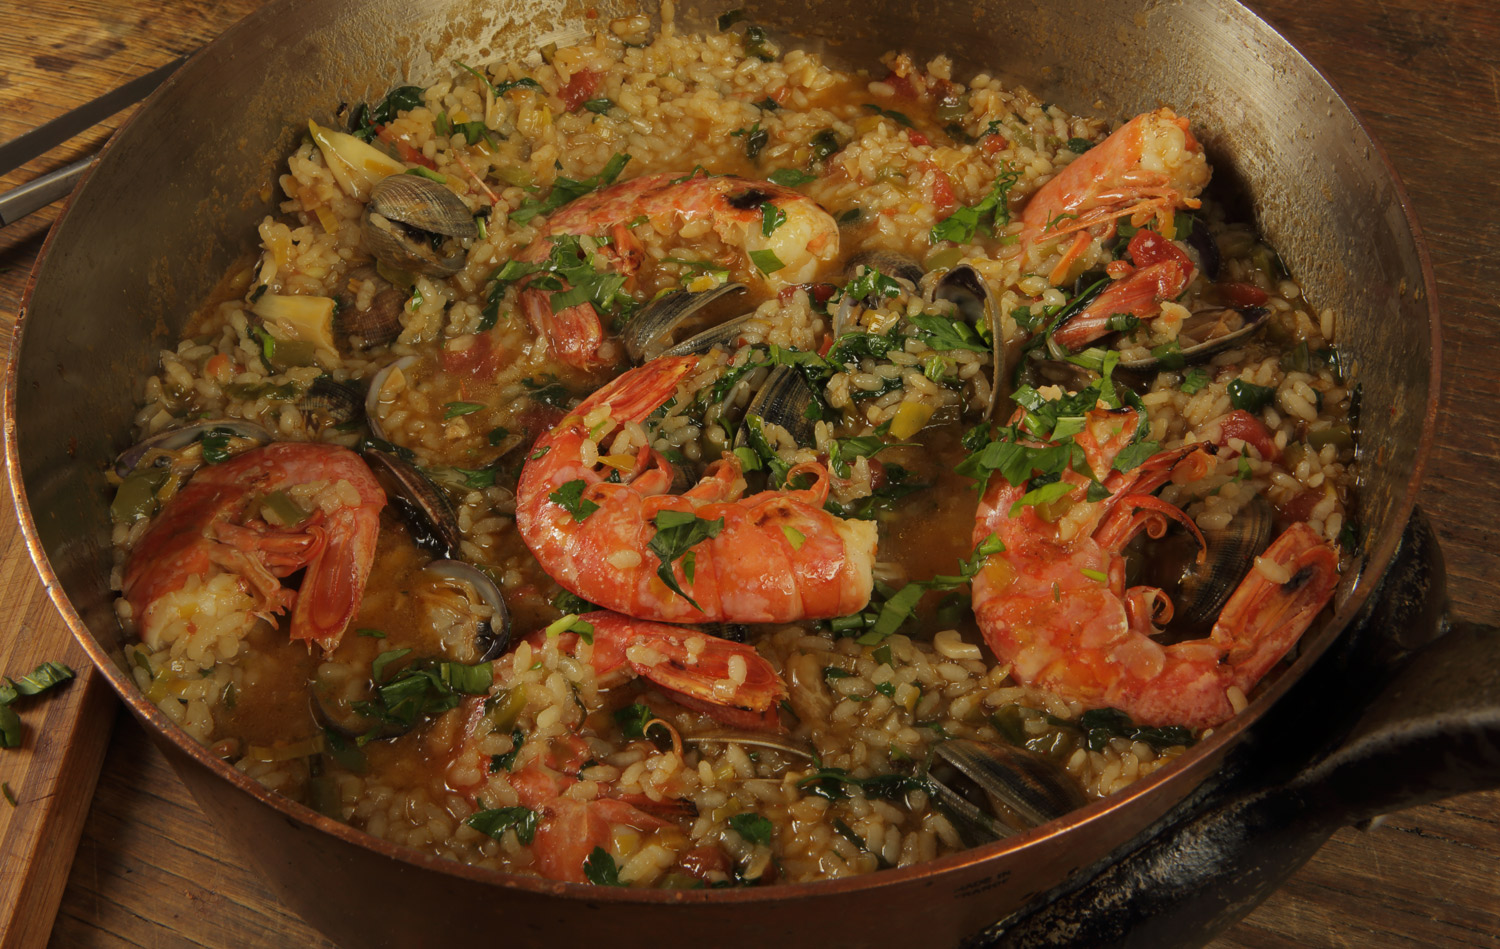 Arroz labosban img 7917